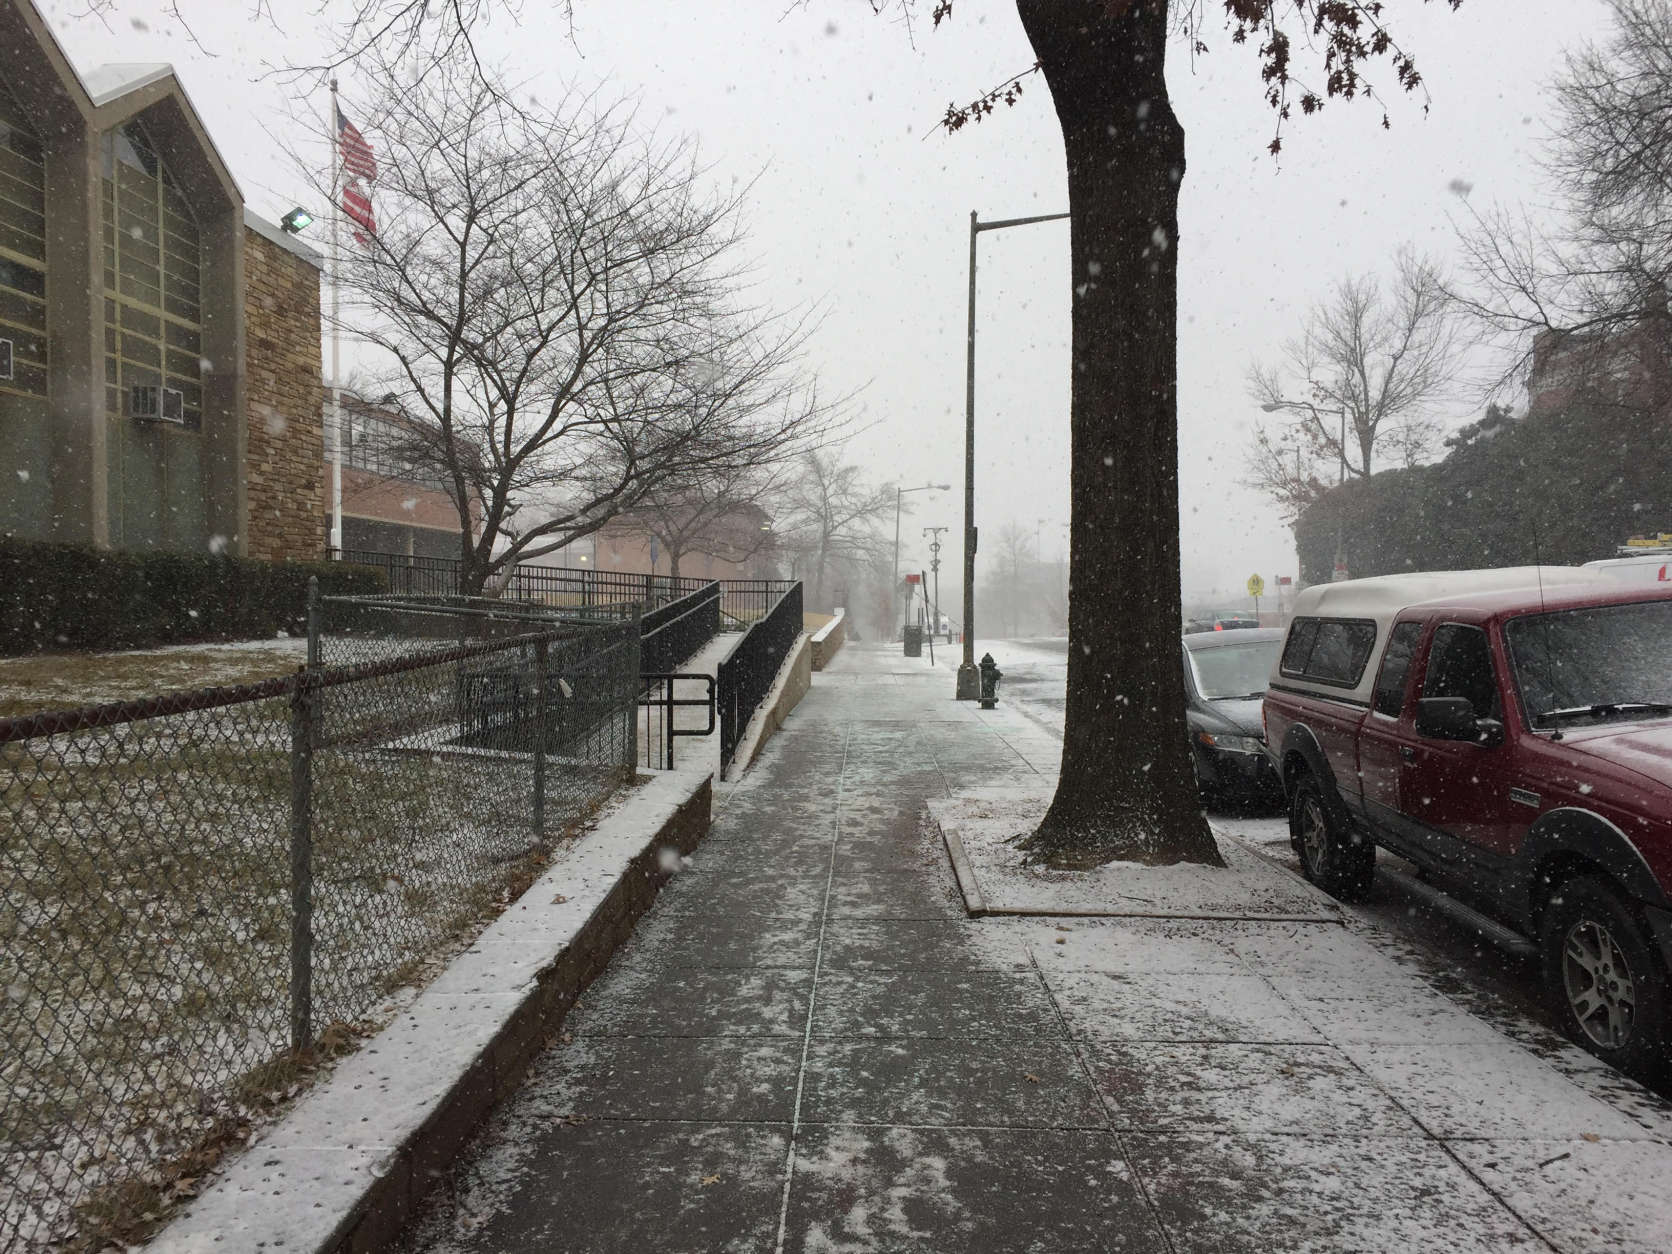 Snow falls, coating the sidewalks Saturday on 11th Street Northwest in D.C. (Courtesy Isaac DeSanto)